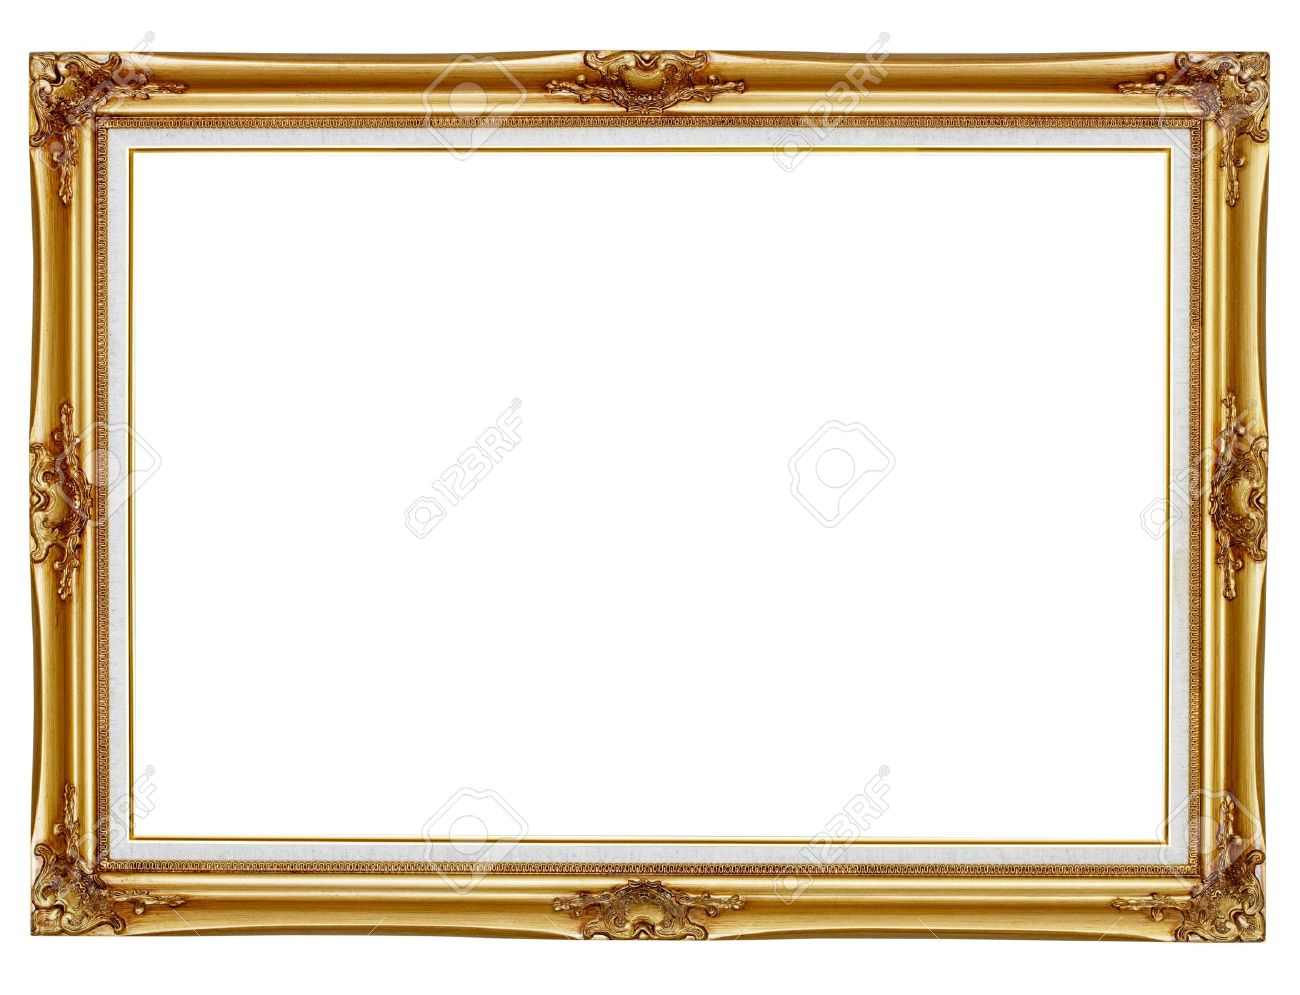 Old gilded frame for painting isolated on white background stock old gilded frame for painting isolated on white background stock photo 11244434 jeuxipadfo Images